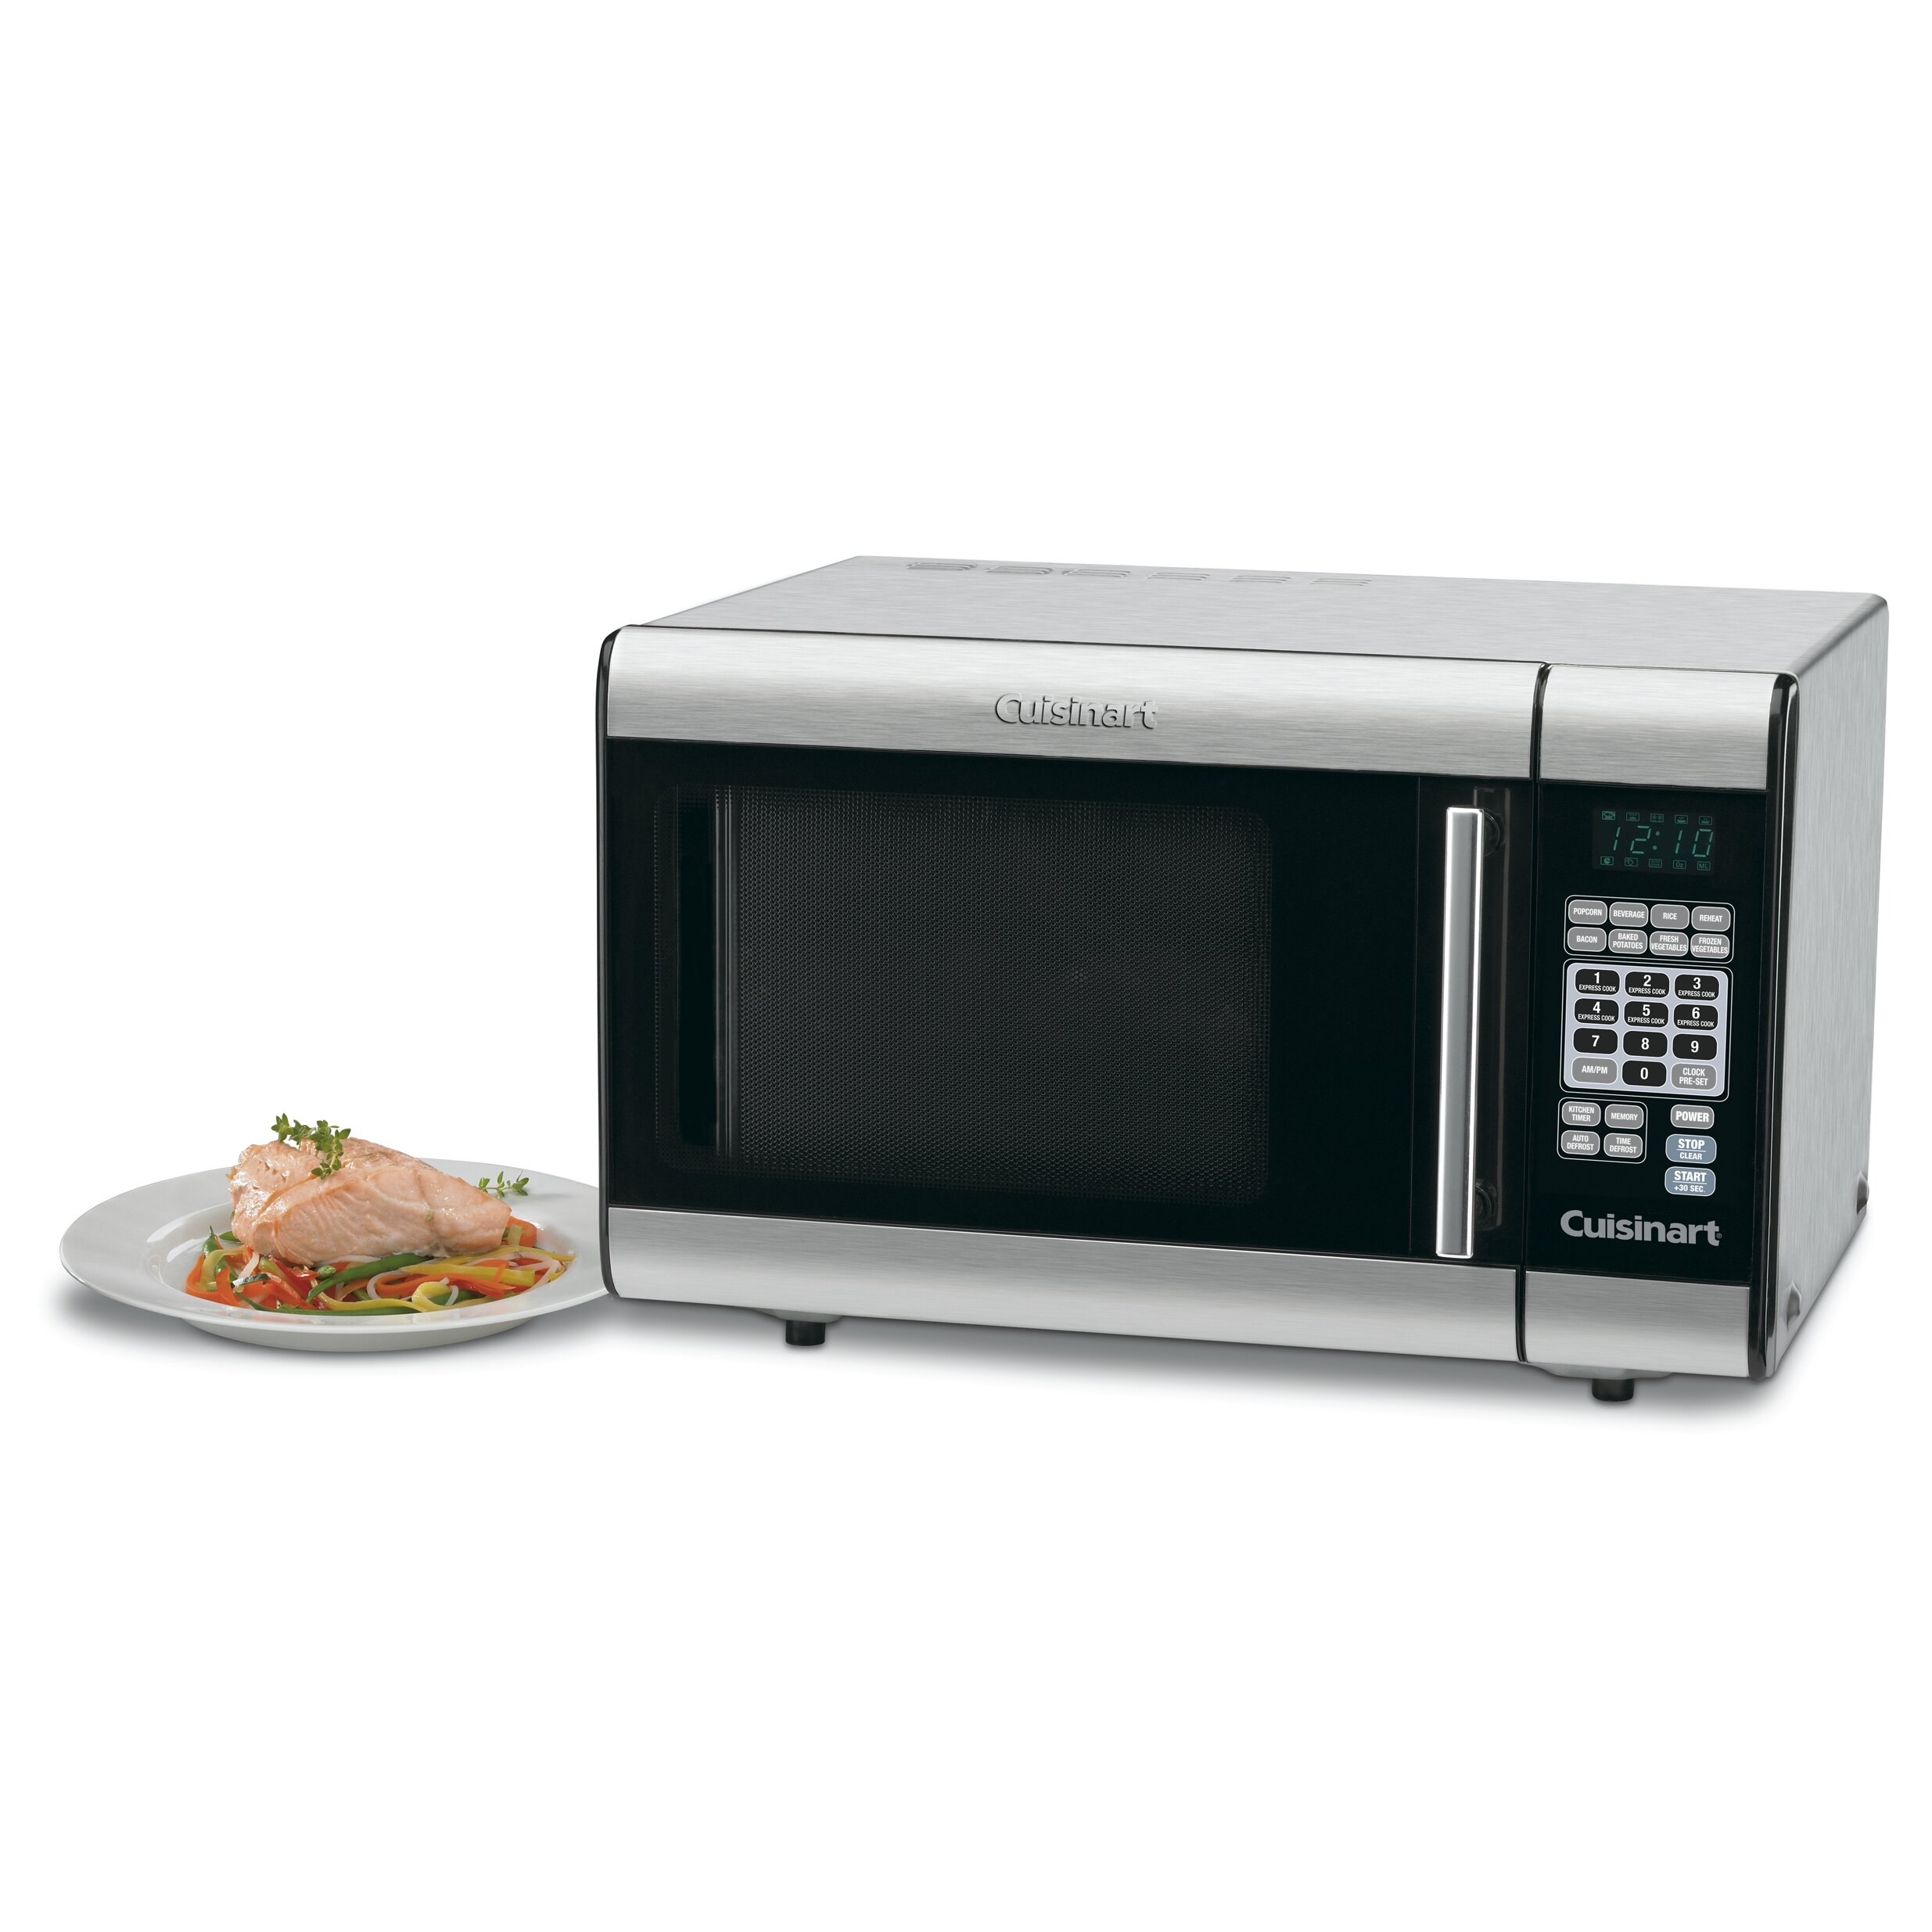 Microwave Convection Oven Sharp R830bk 900 Watts